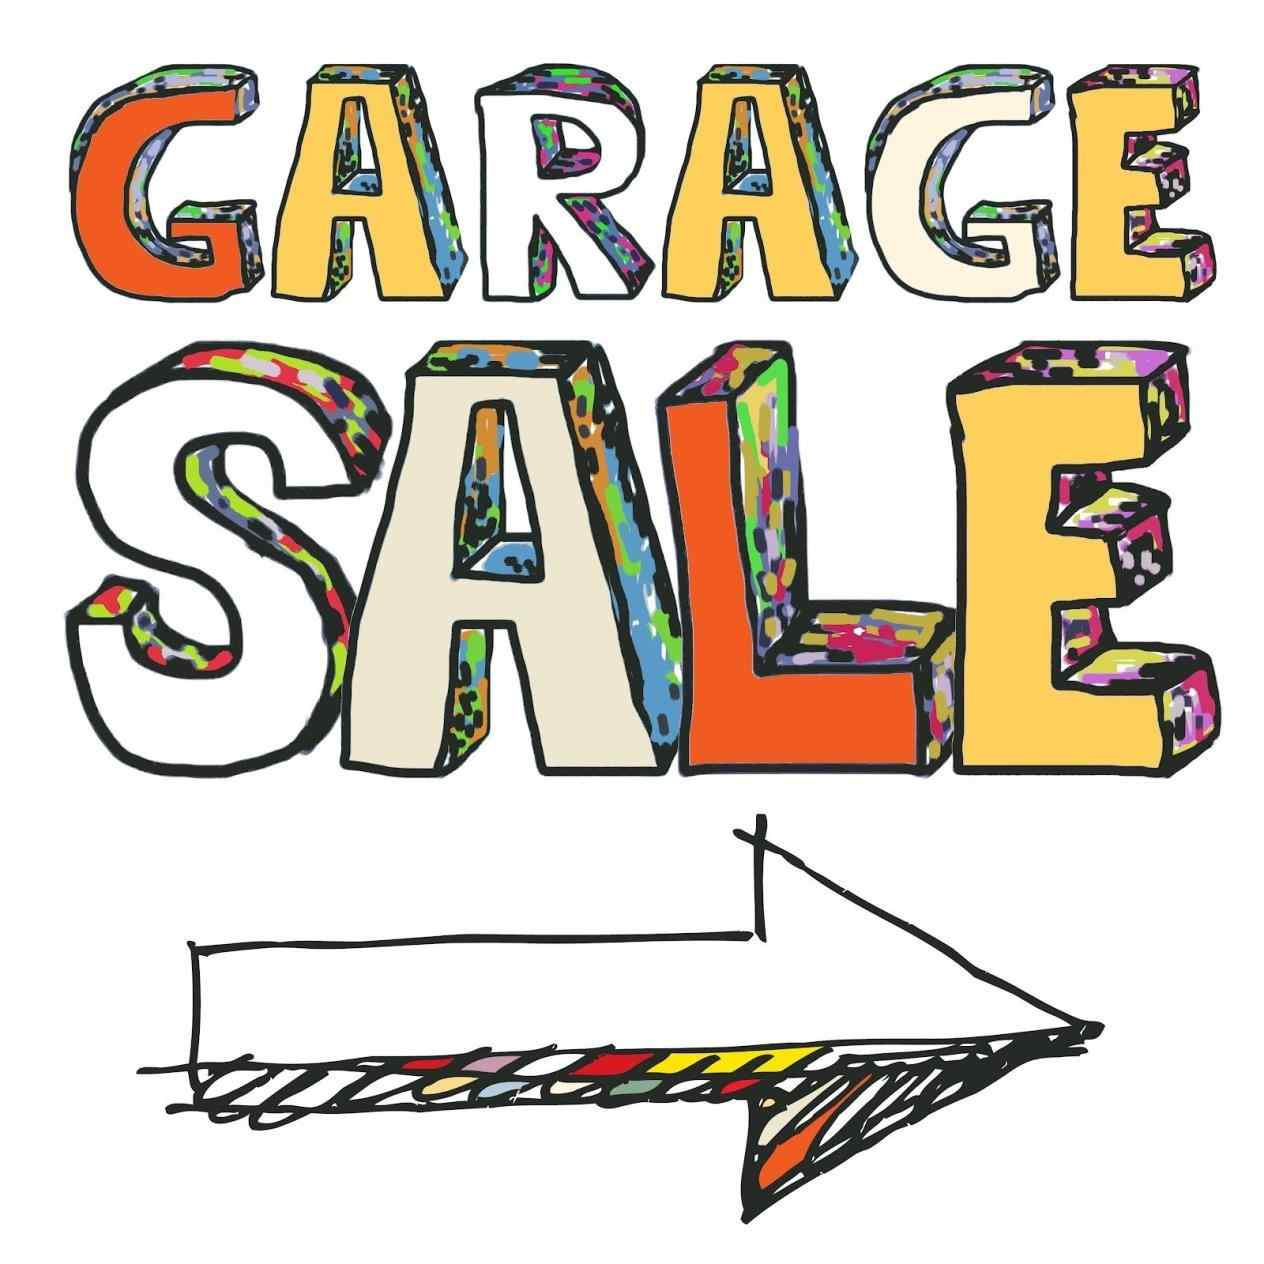 1264x1264 Free Yard Sale Clip Art Neighborhood Garage Sale Clipart 1